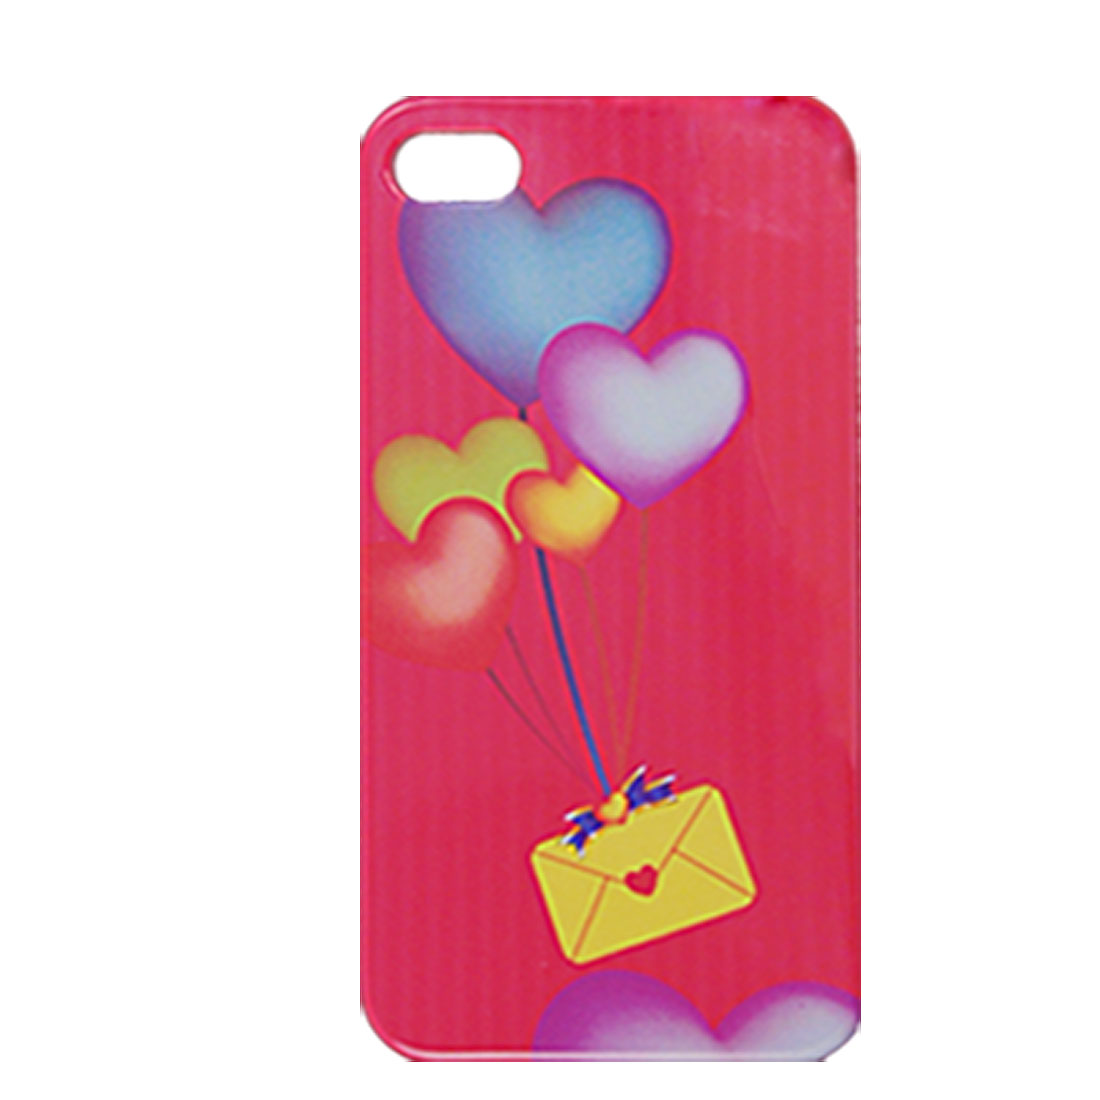 Heart Print Plastic IMD Magenta Back Case for iPhone 4 4G